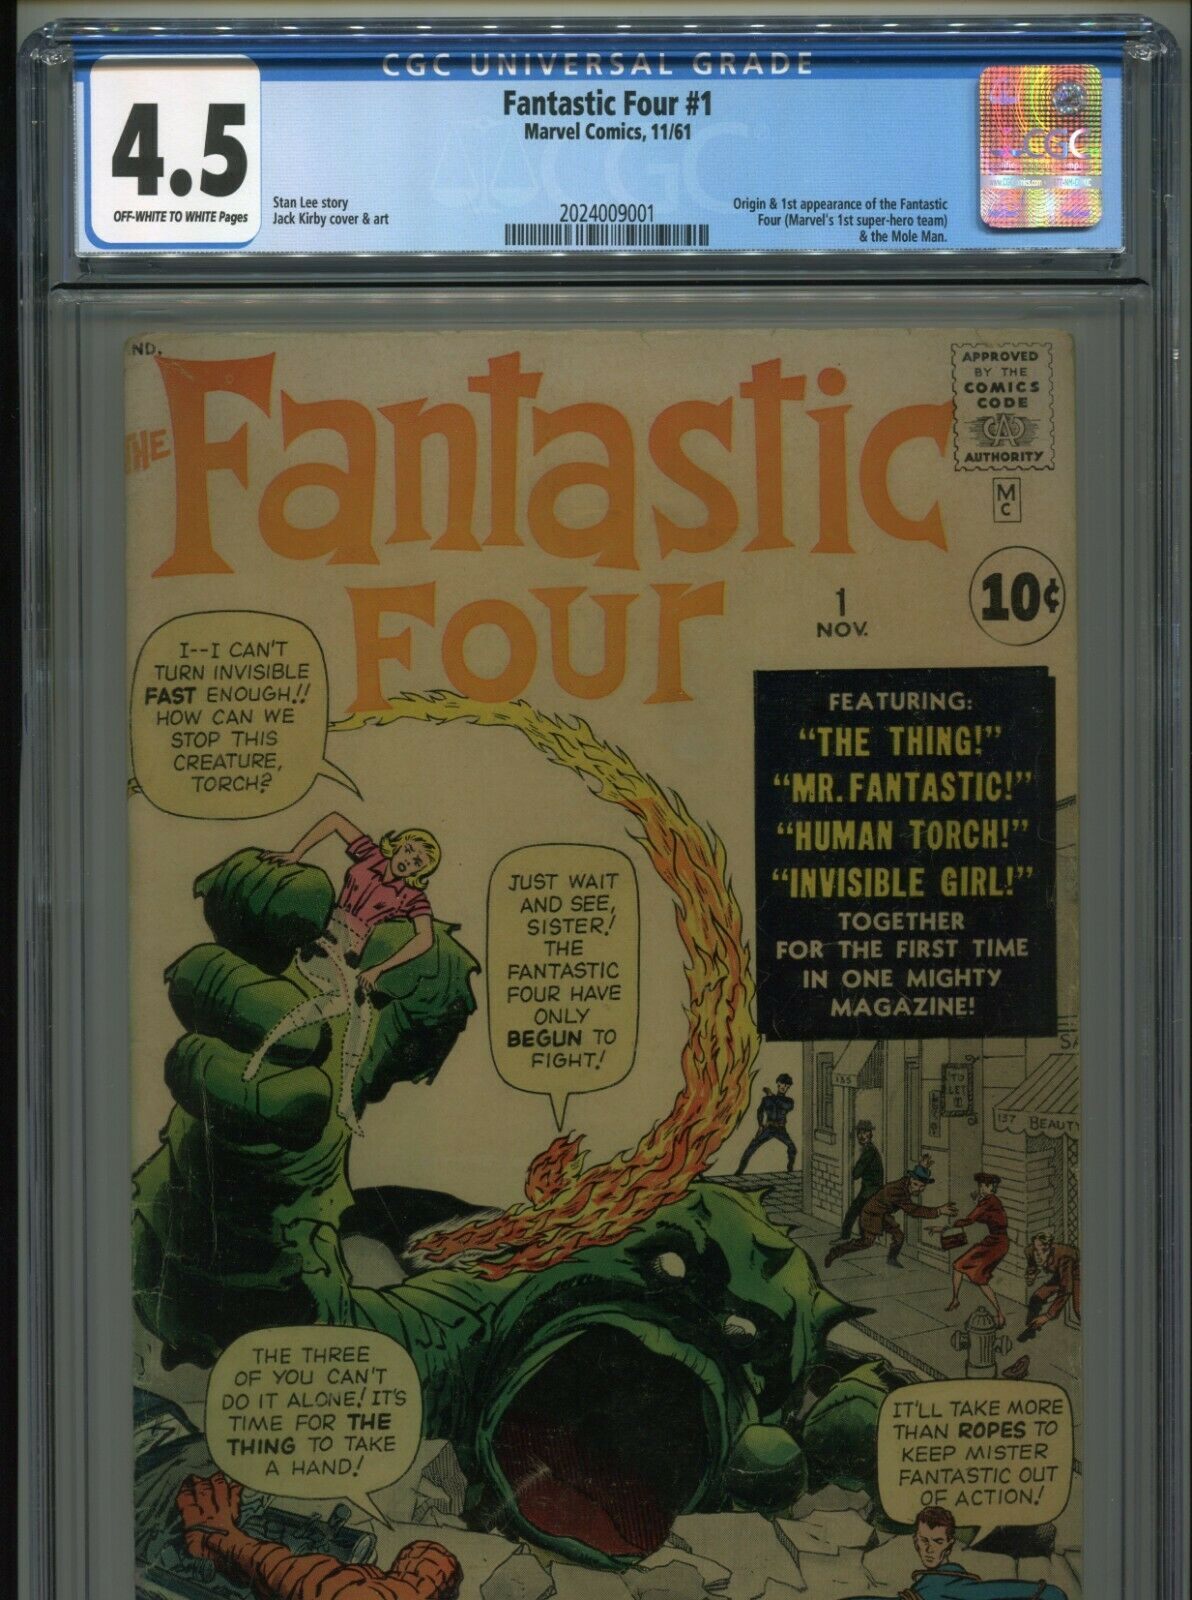 1961 MARVEL FANTASTIC FOUR #1 1ST APPEARANCE FANTASTIC FOUR CGC 4.5 OW-W